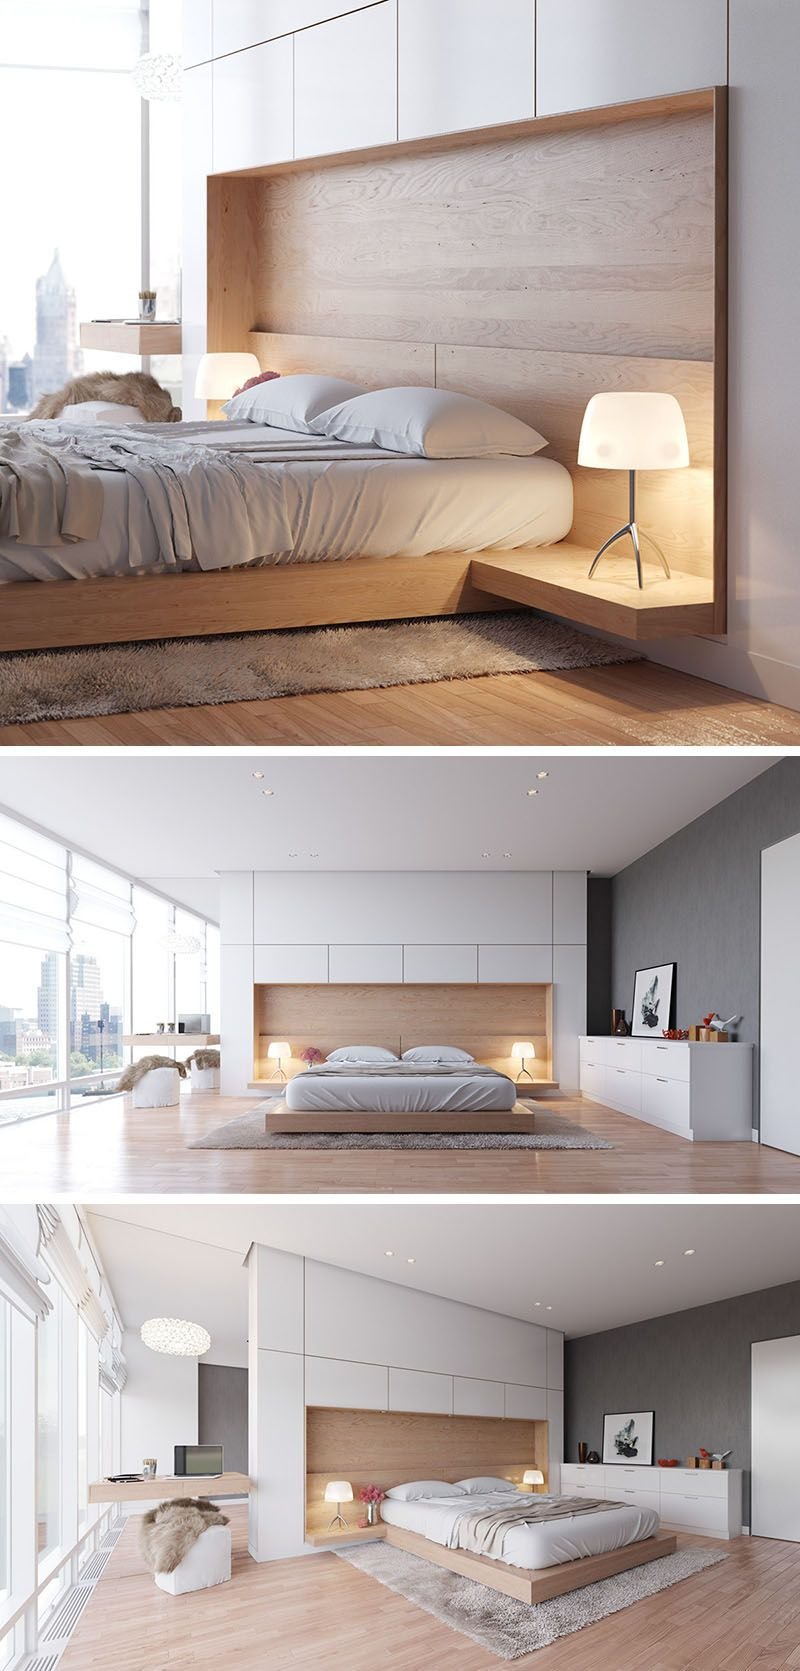 Bedroom design idea combine your bed and side table into one also rh co pinterest